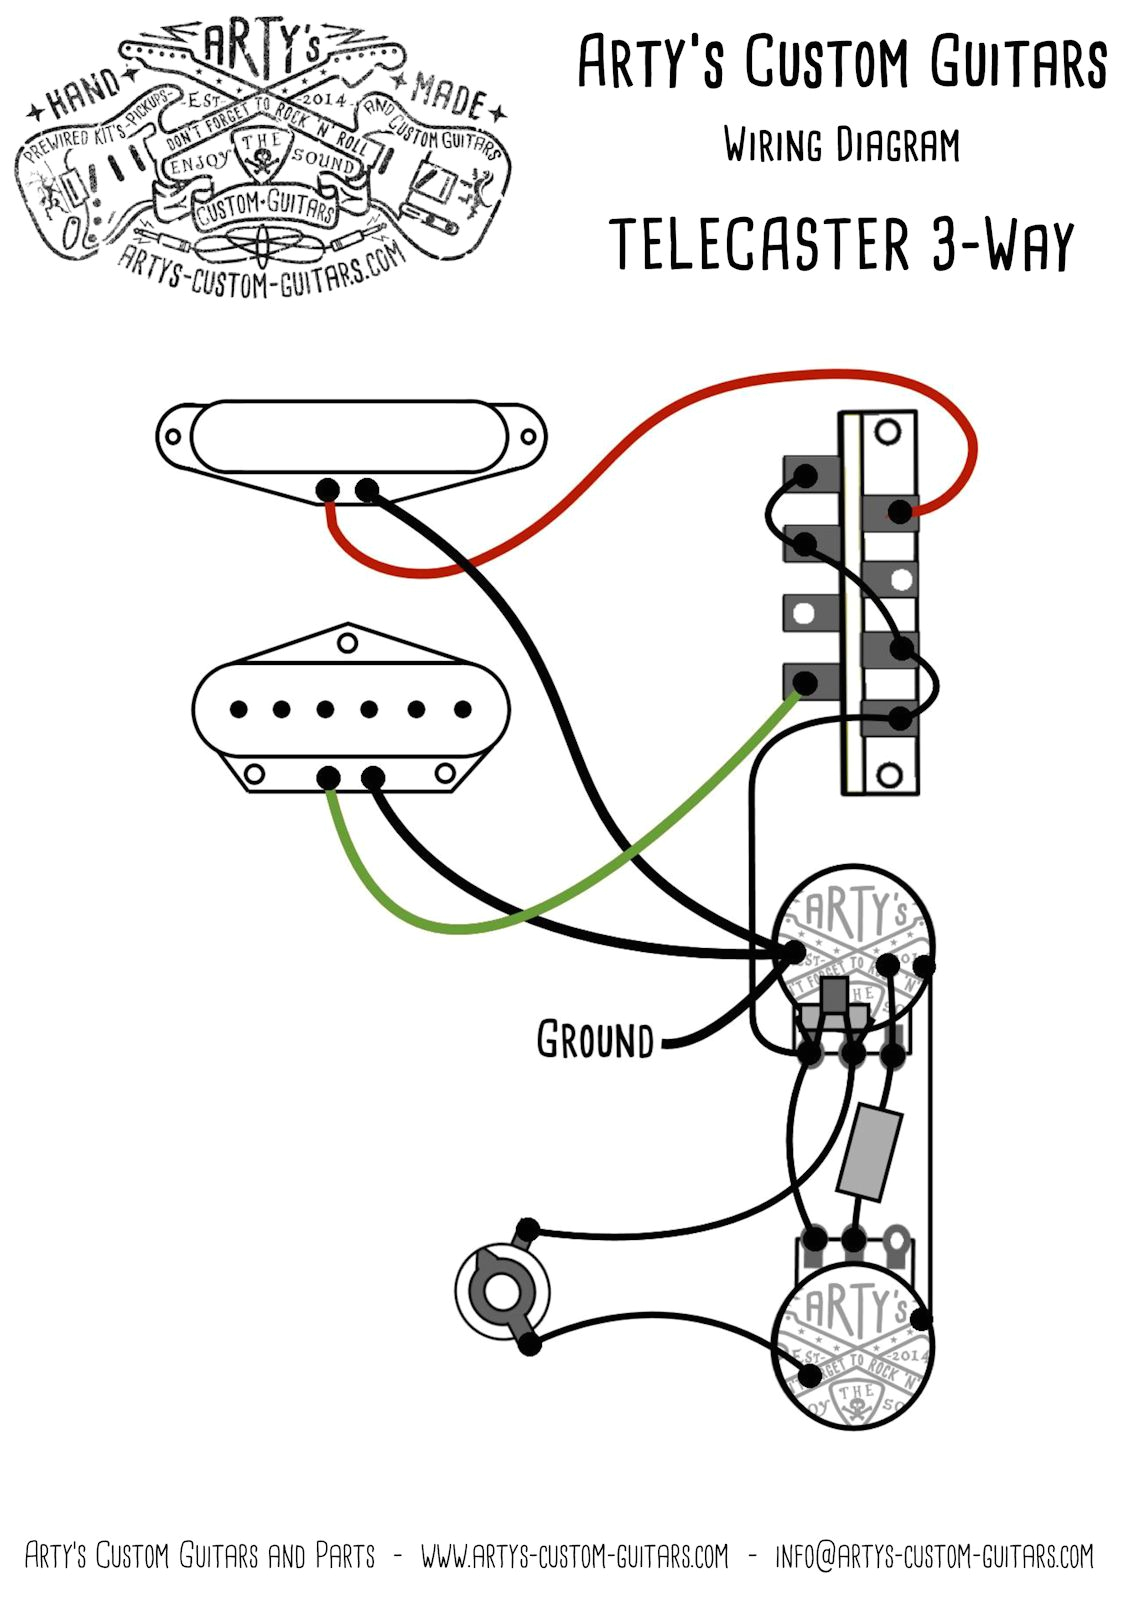 artys custom guitars telecaster standard wiring kit pre wired prewired kit harness control plate arty s